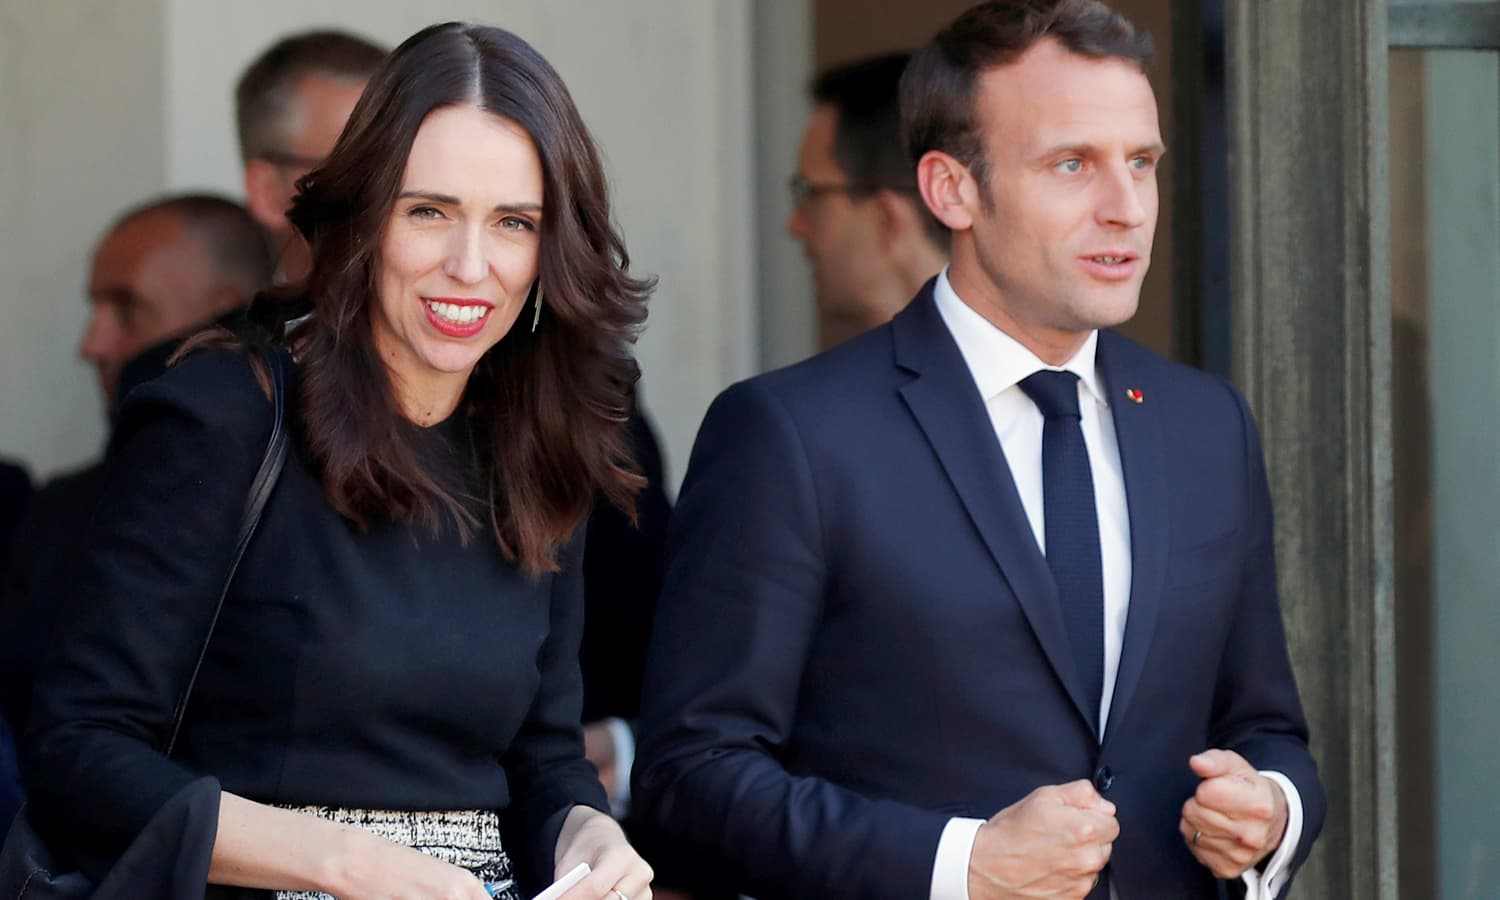 French President Emmanuel Macron and New Zealand's Prime Minister Jacinda Ardern leave after the launch of the 'Christchurch Call'. ─ Reuters